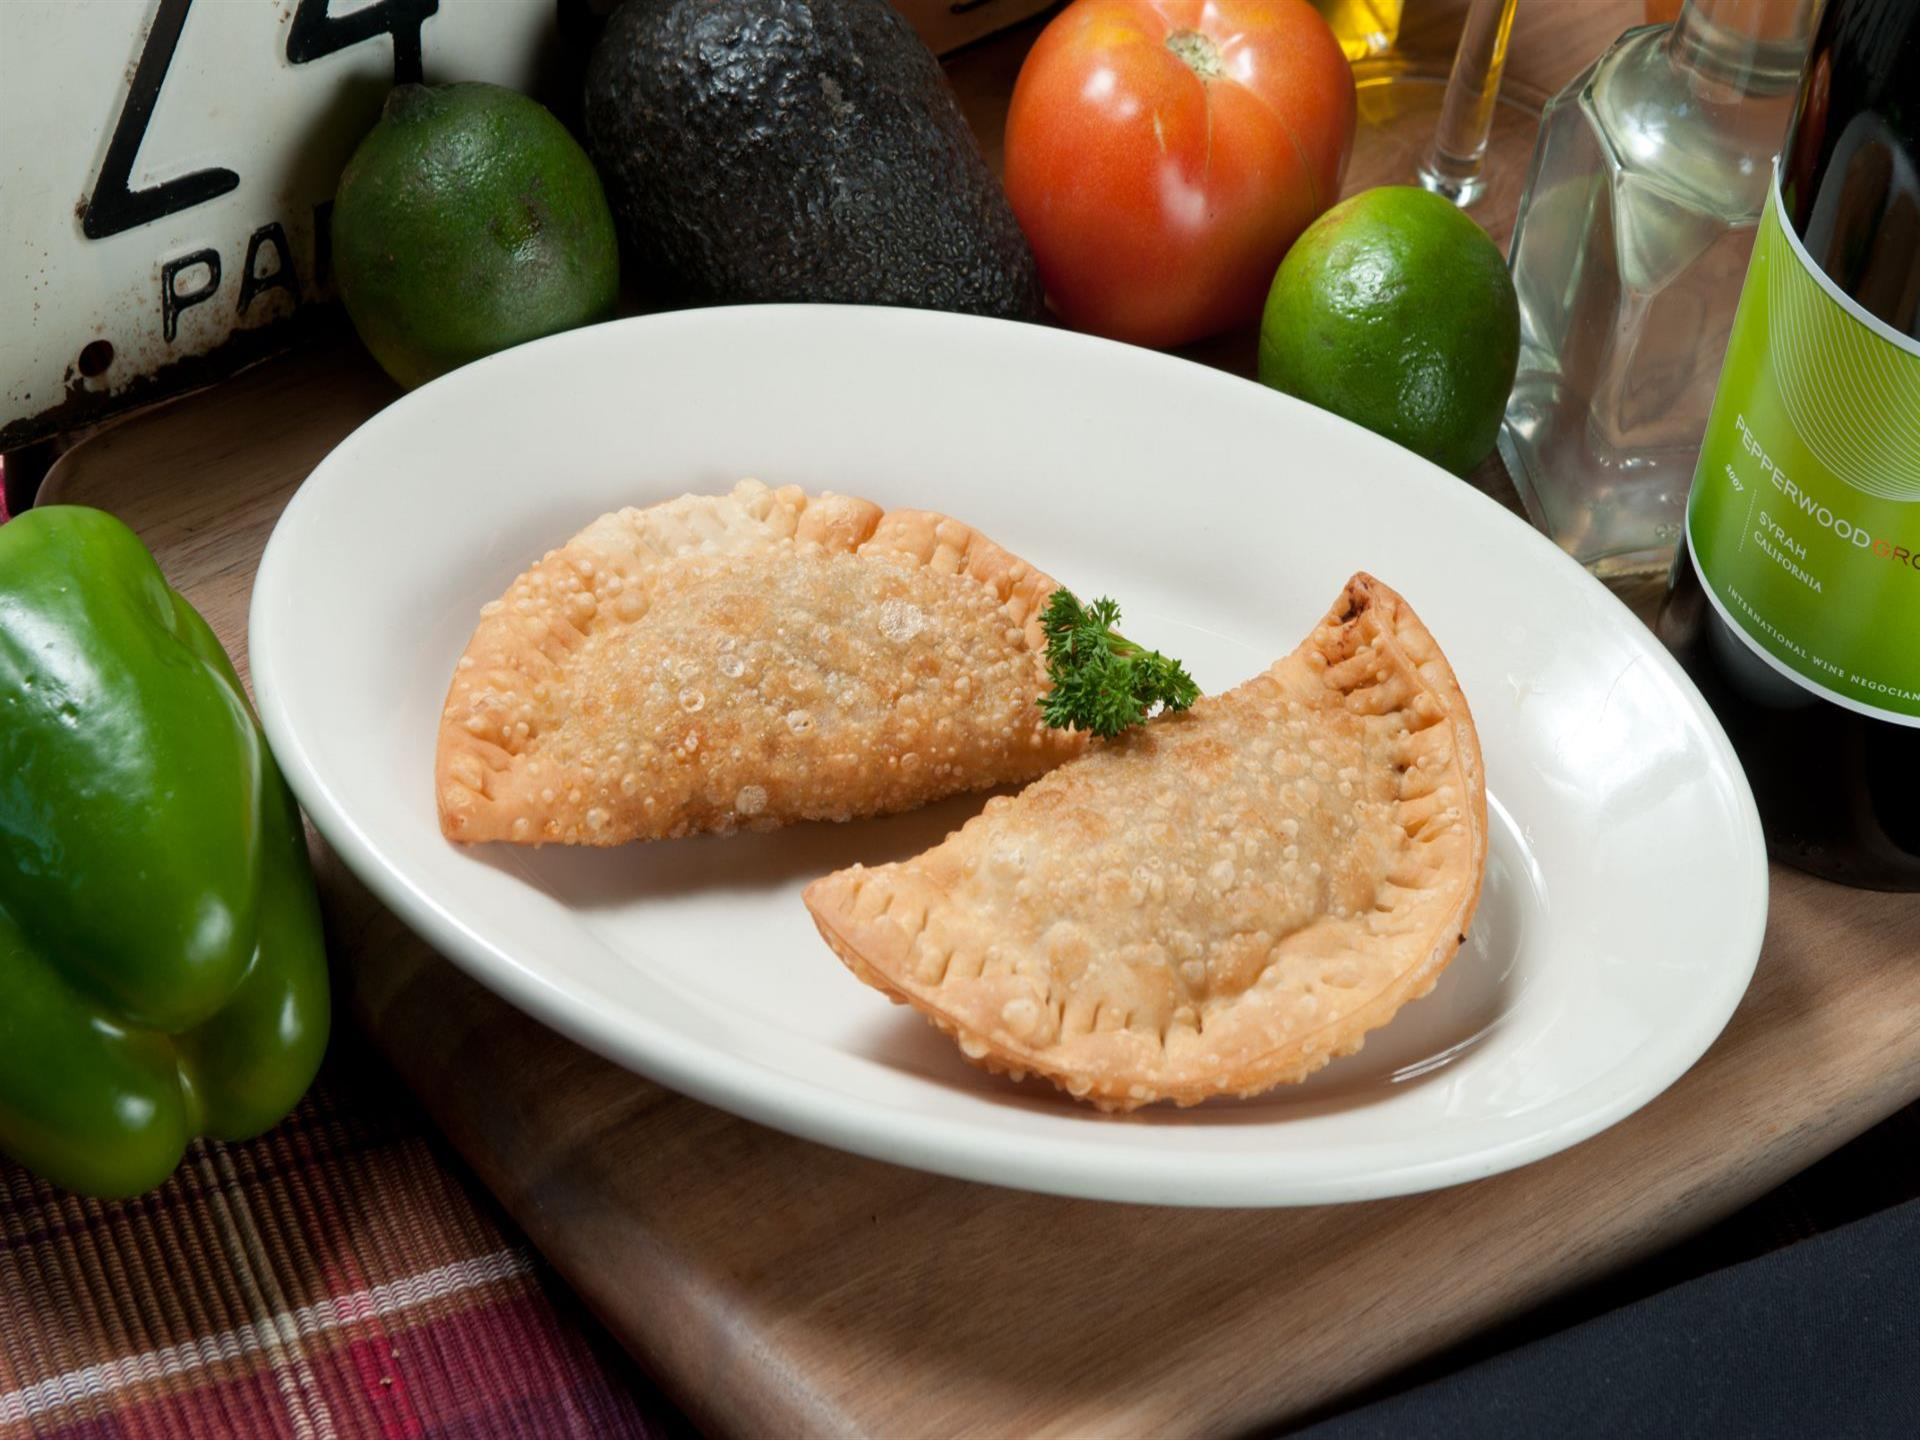 Two empanadas on a white plate. Lime, tomato, and avocado in the background.